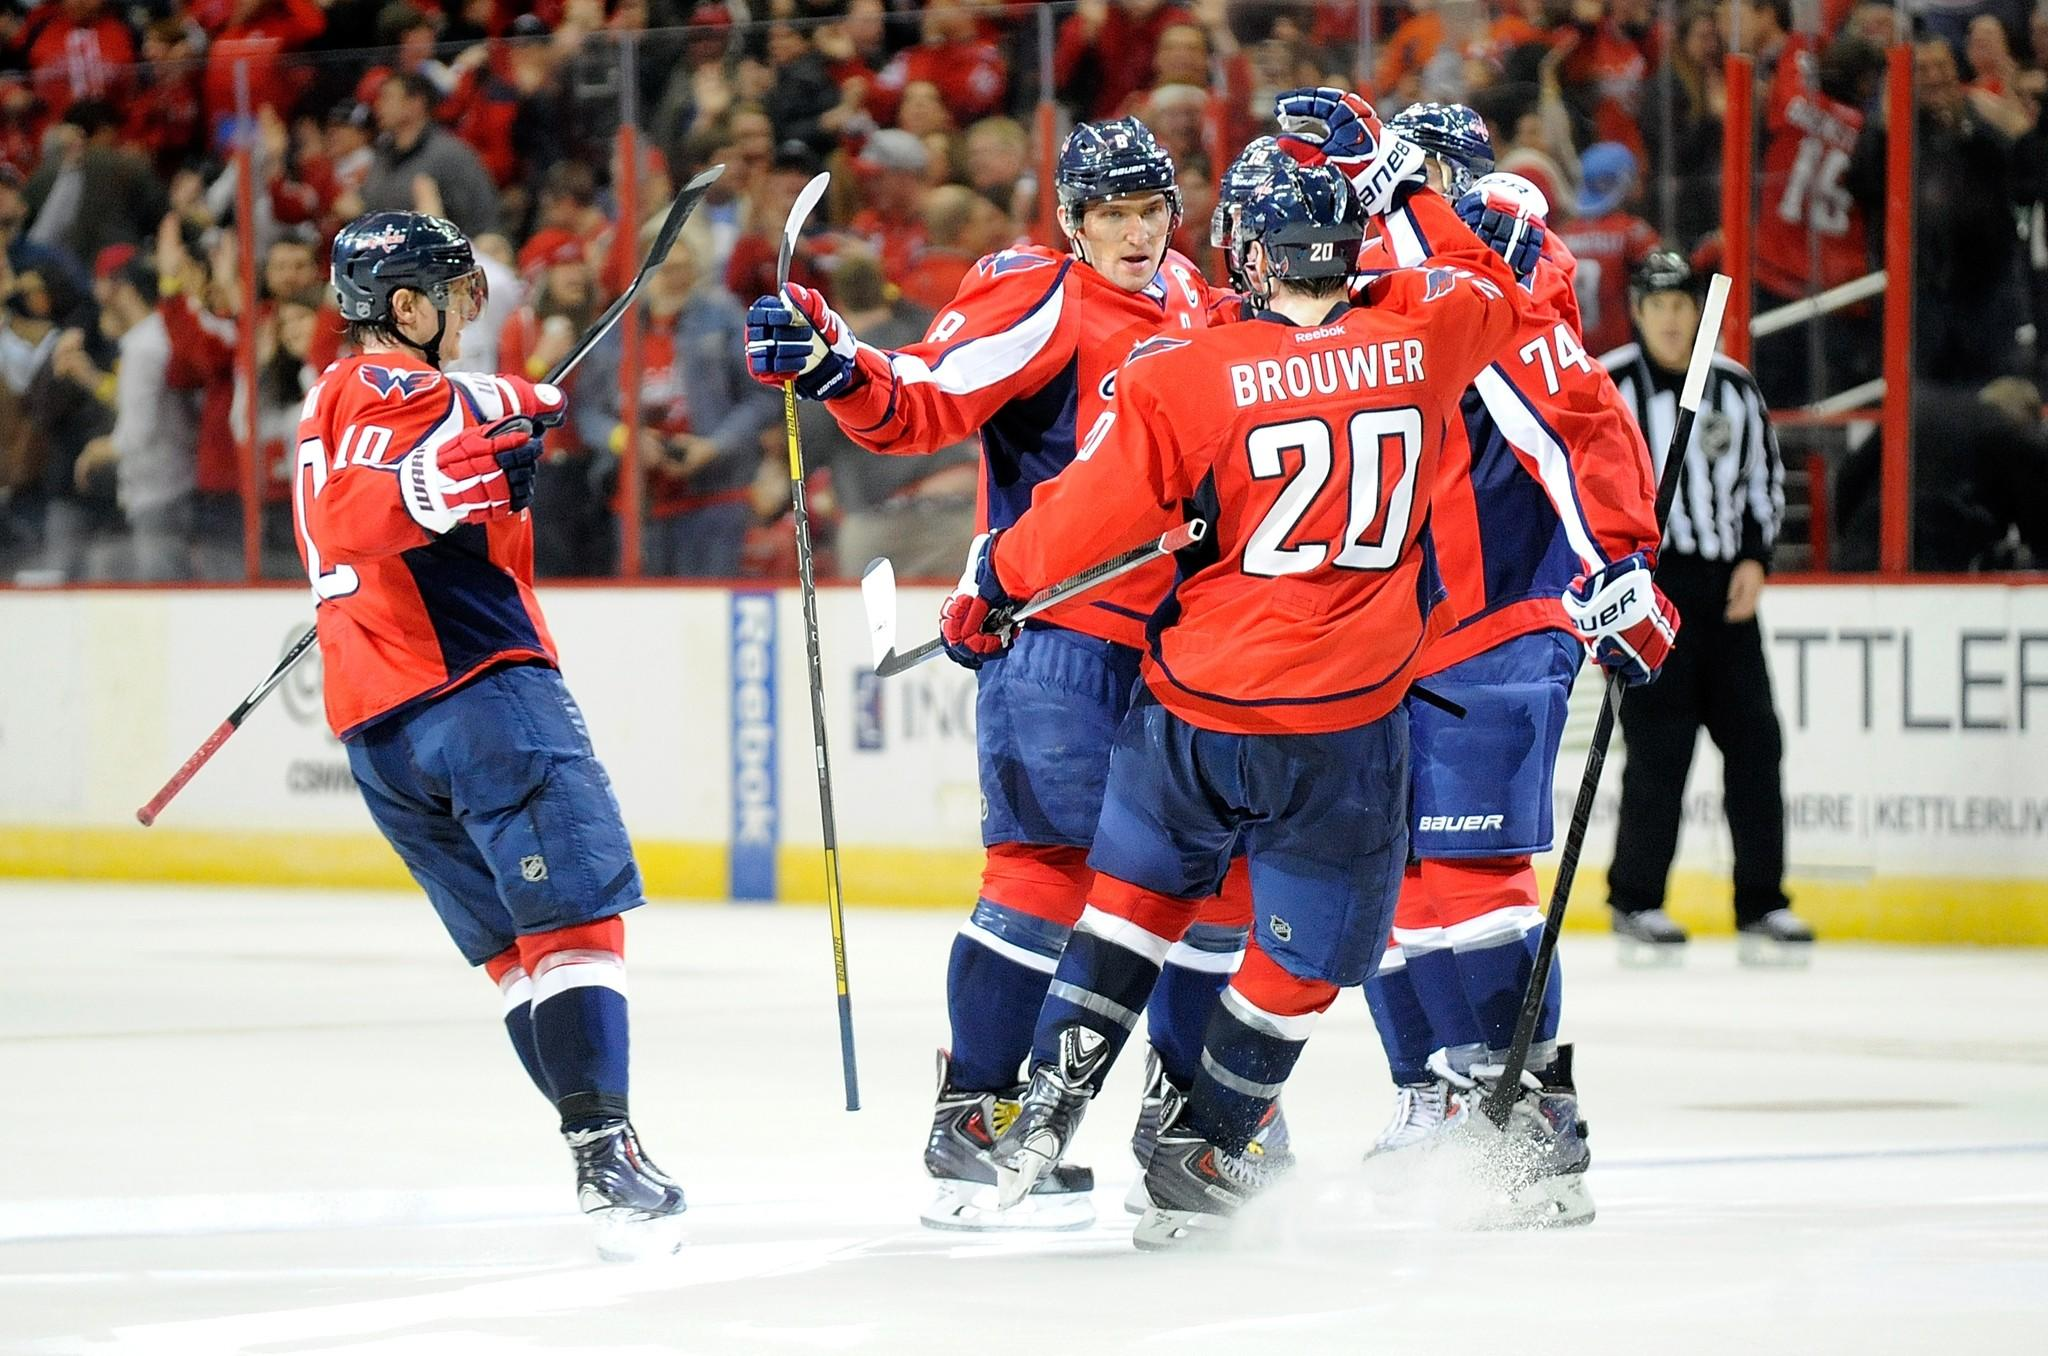 Alex Ovechkin s overtime goal lifts Capitals over Red Wings bd967cd44